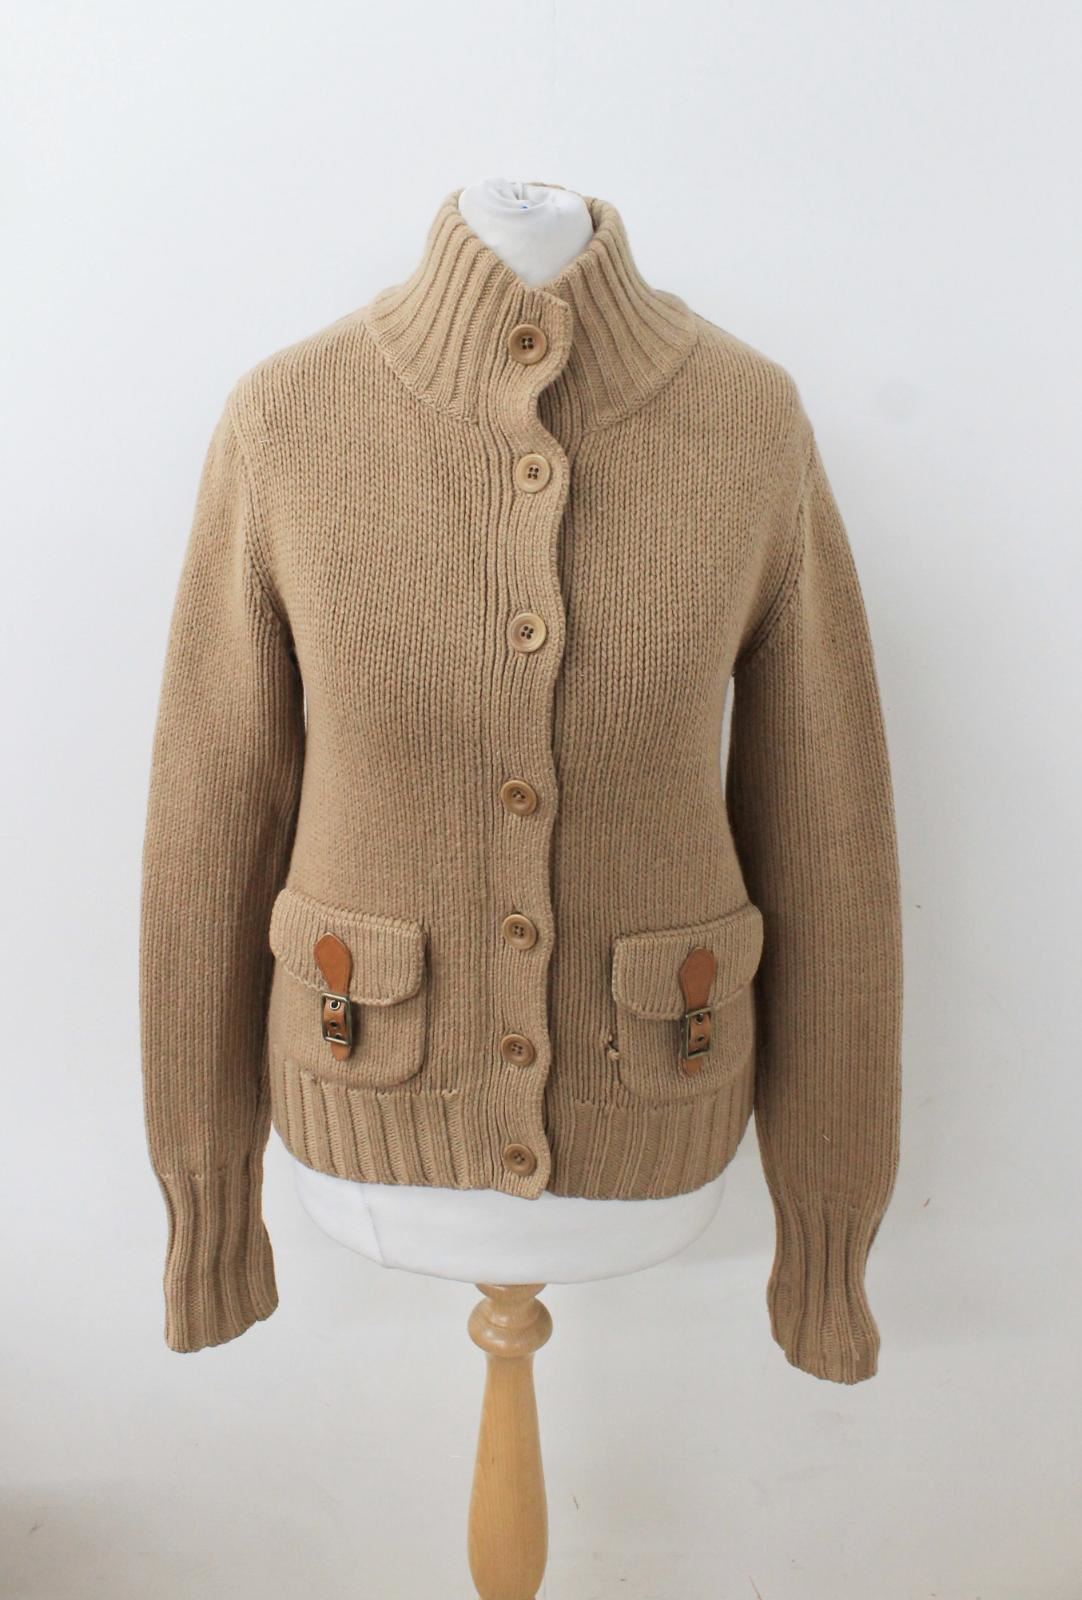 821519af2 RALPH LAUREN Ladies Camel Brown Knitted Long Sleeved Cashmere Wool ...